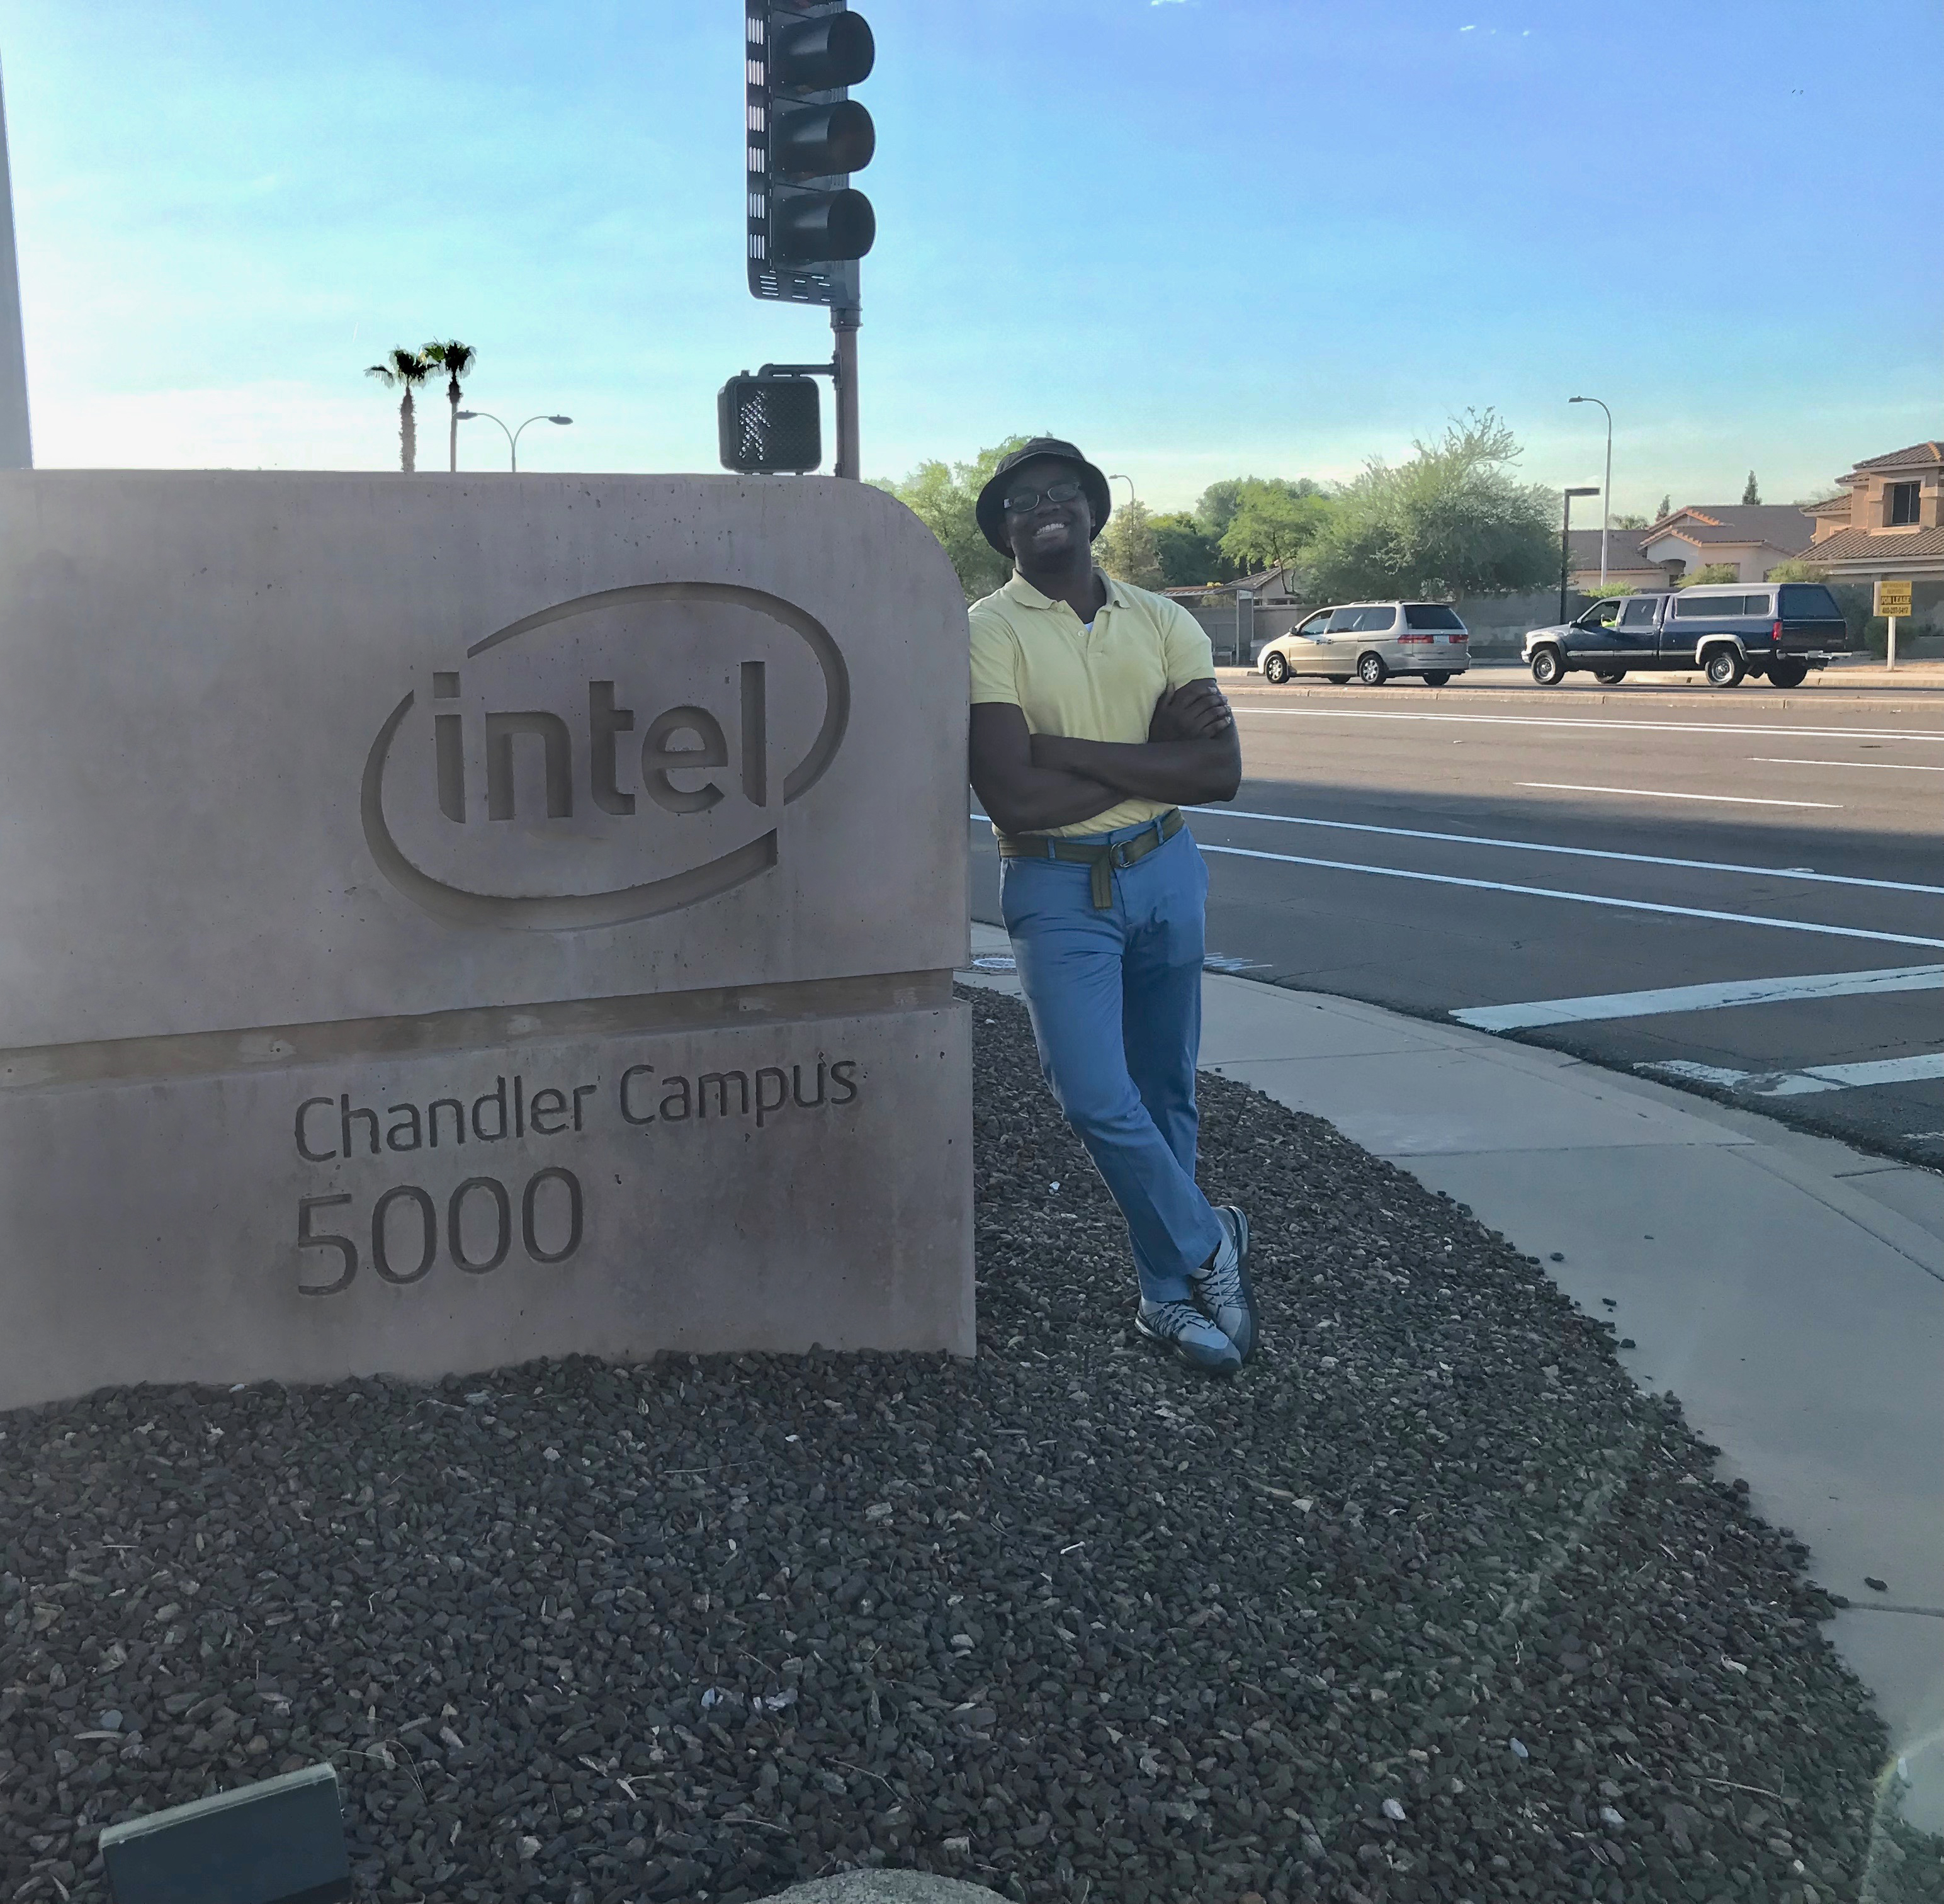 Ossie Douglas stands in front of Intel's Chandler campus sign